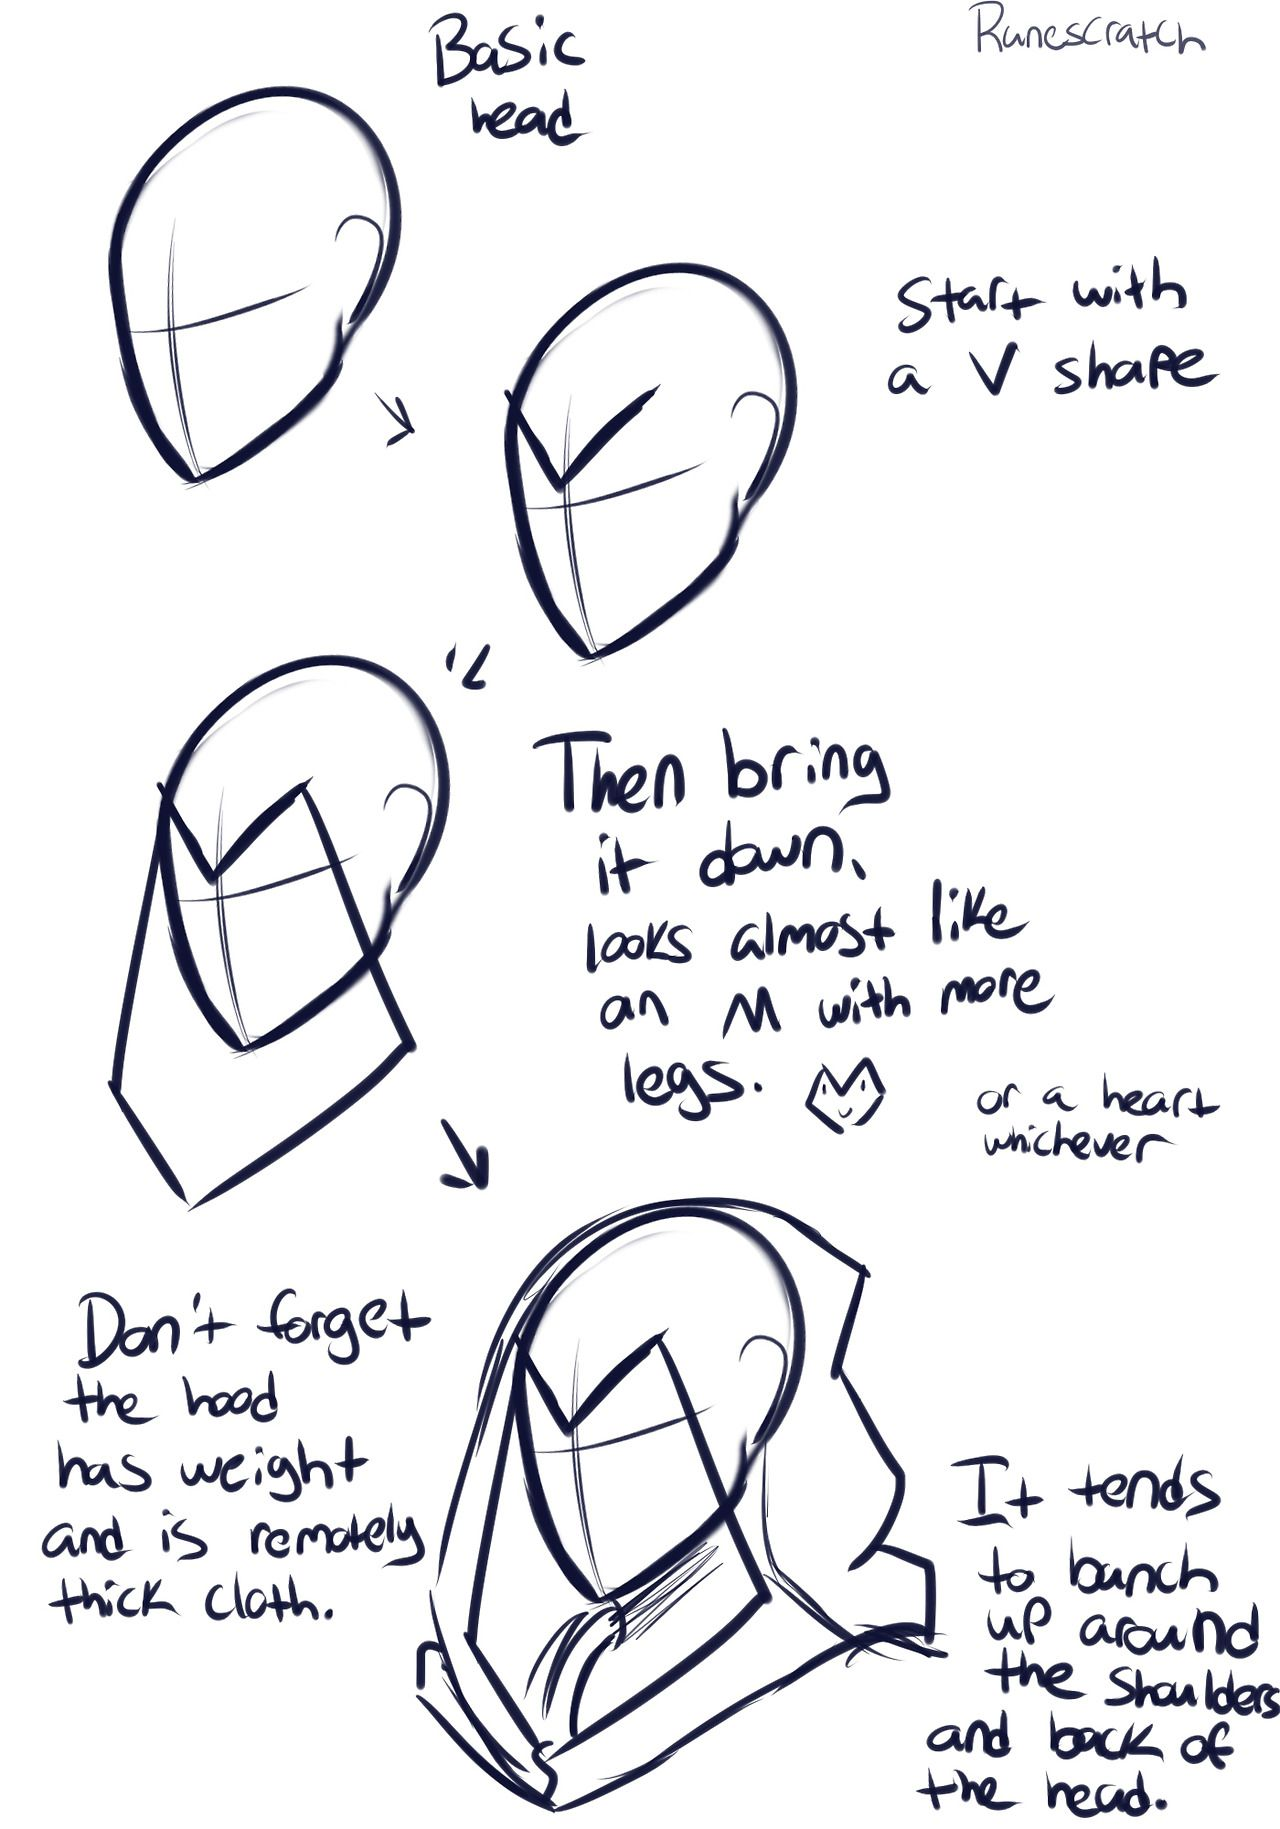 How To Draw Hoods Visit The Website For More Examples! Credit To:  Runescratch